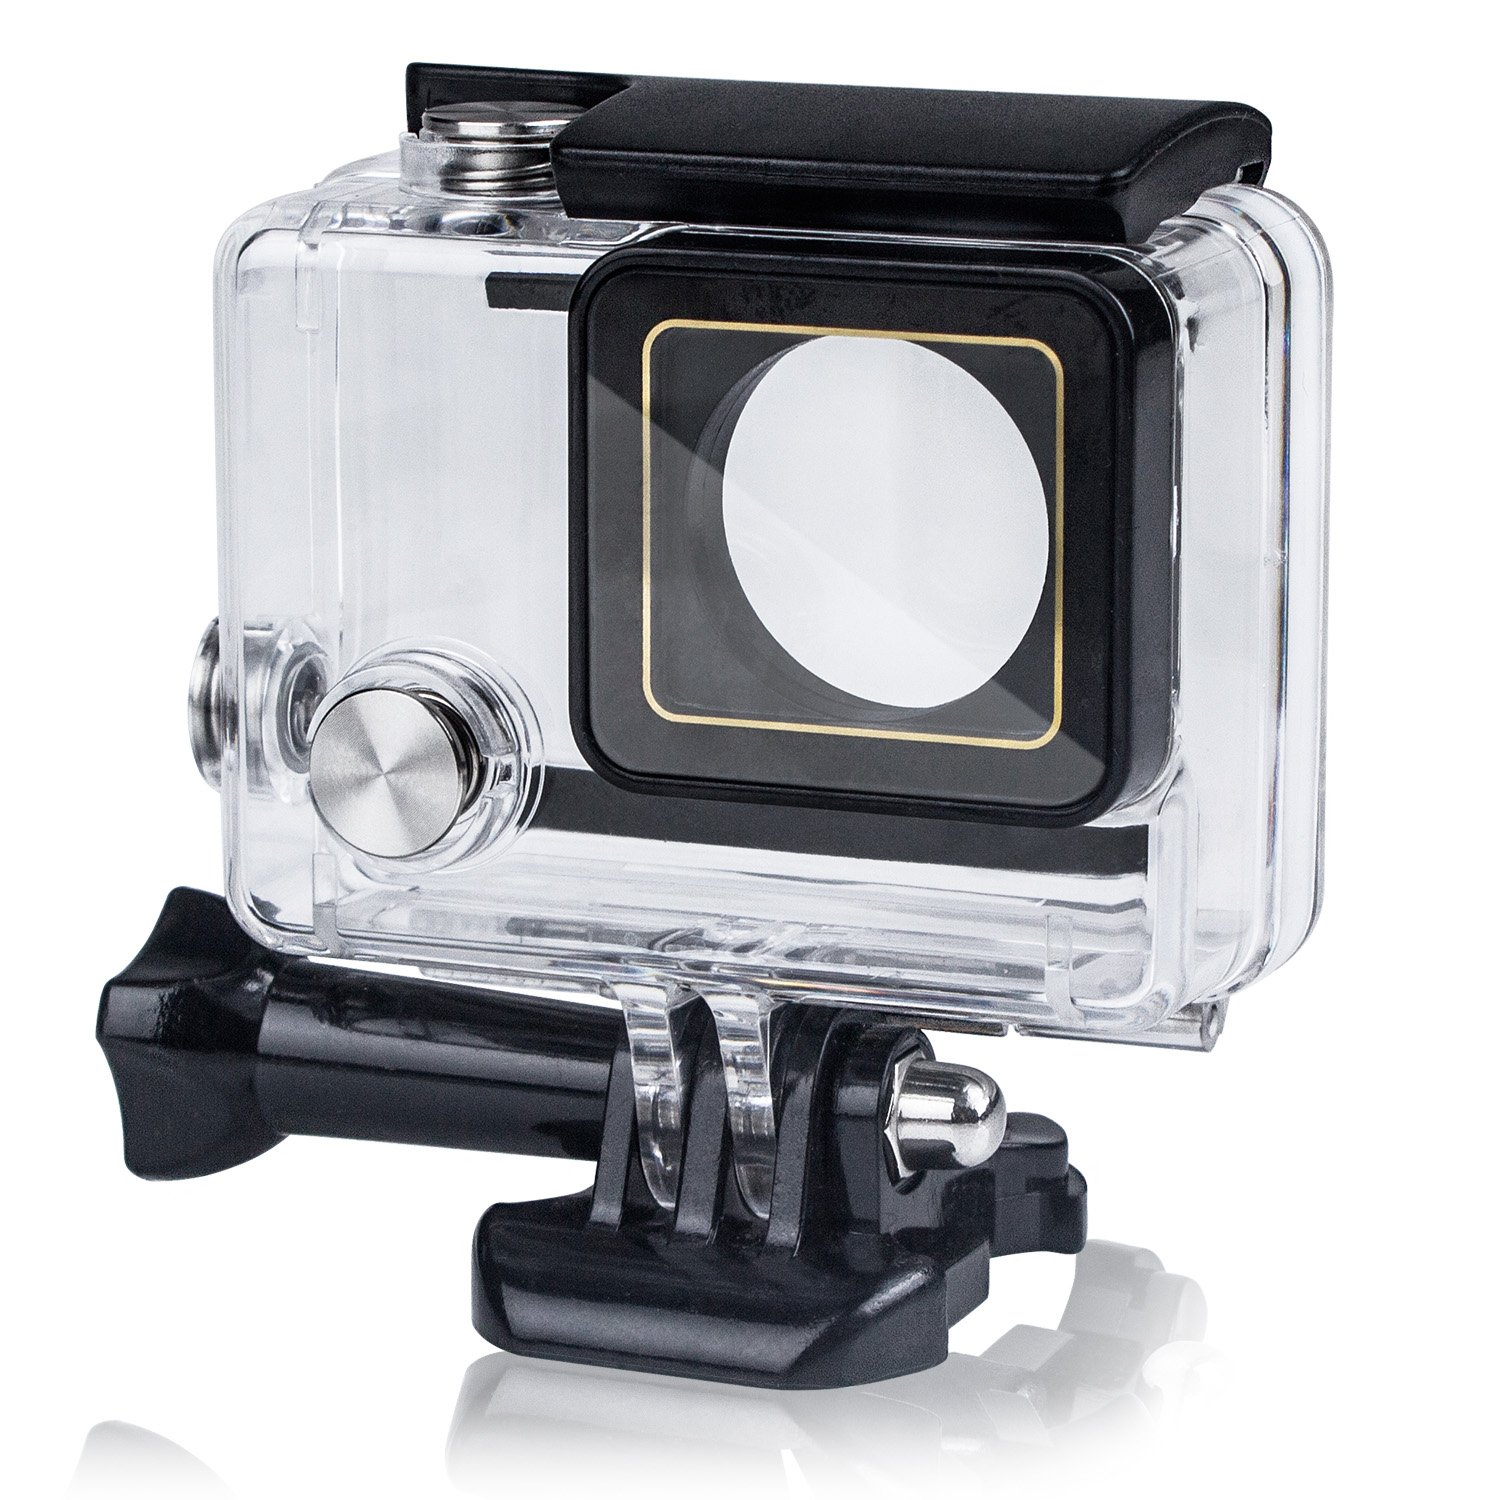 Amazon.com: Funda impermeable para GoPro.: Camera & Photo